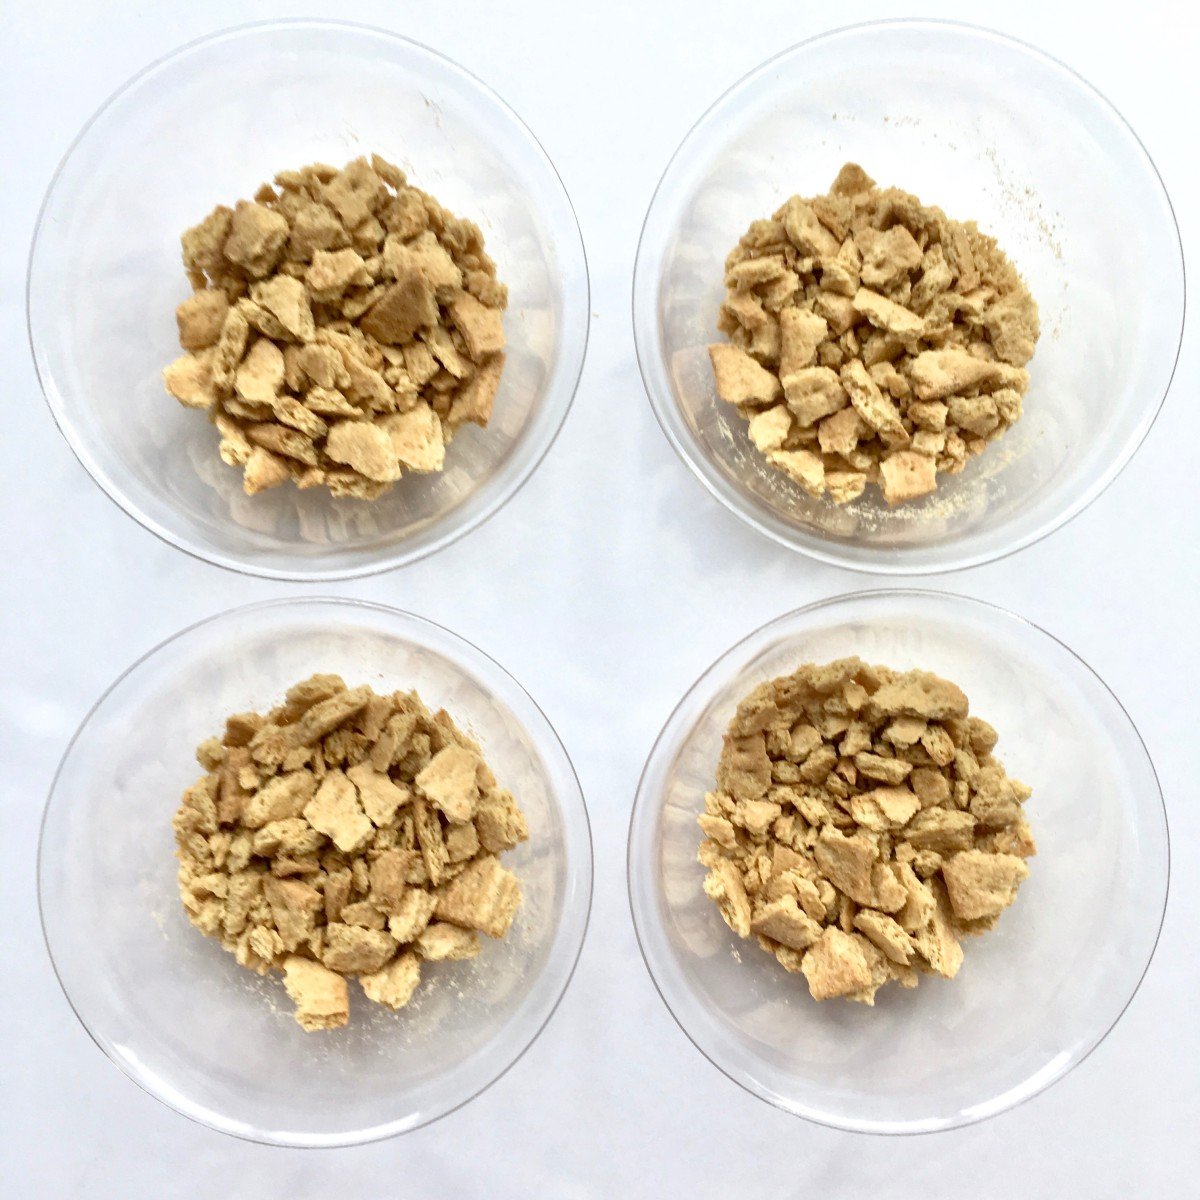 Crumble the crackers into small pieces.